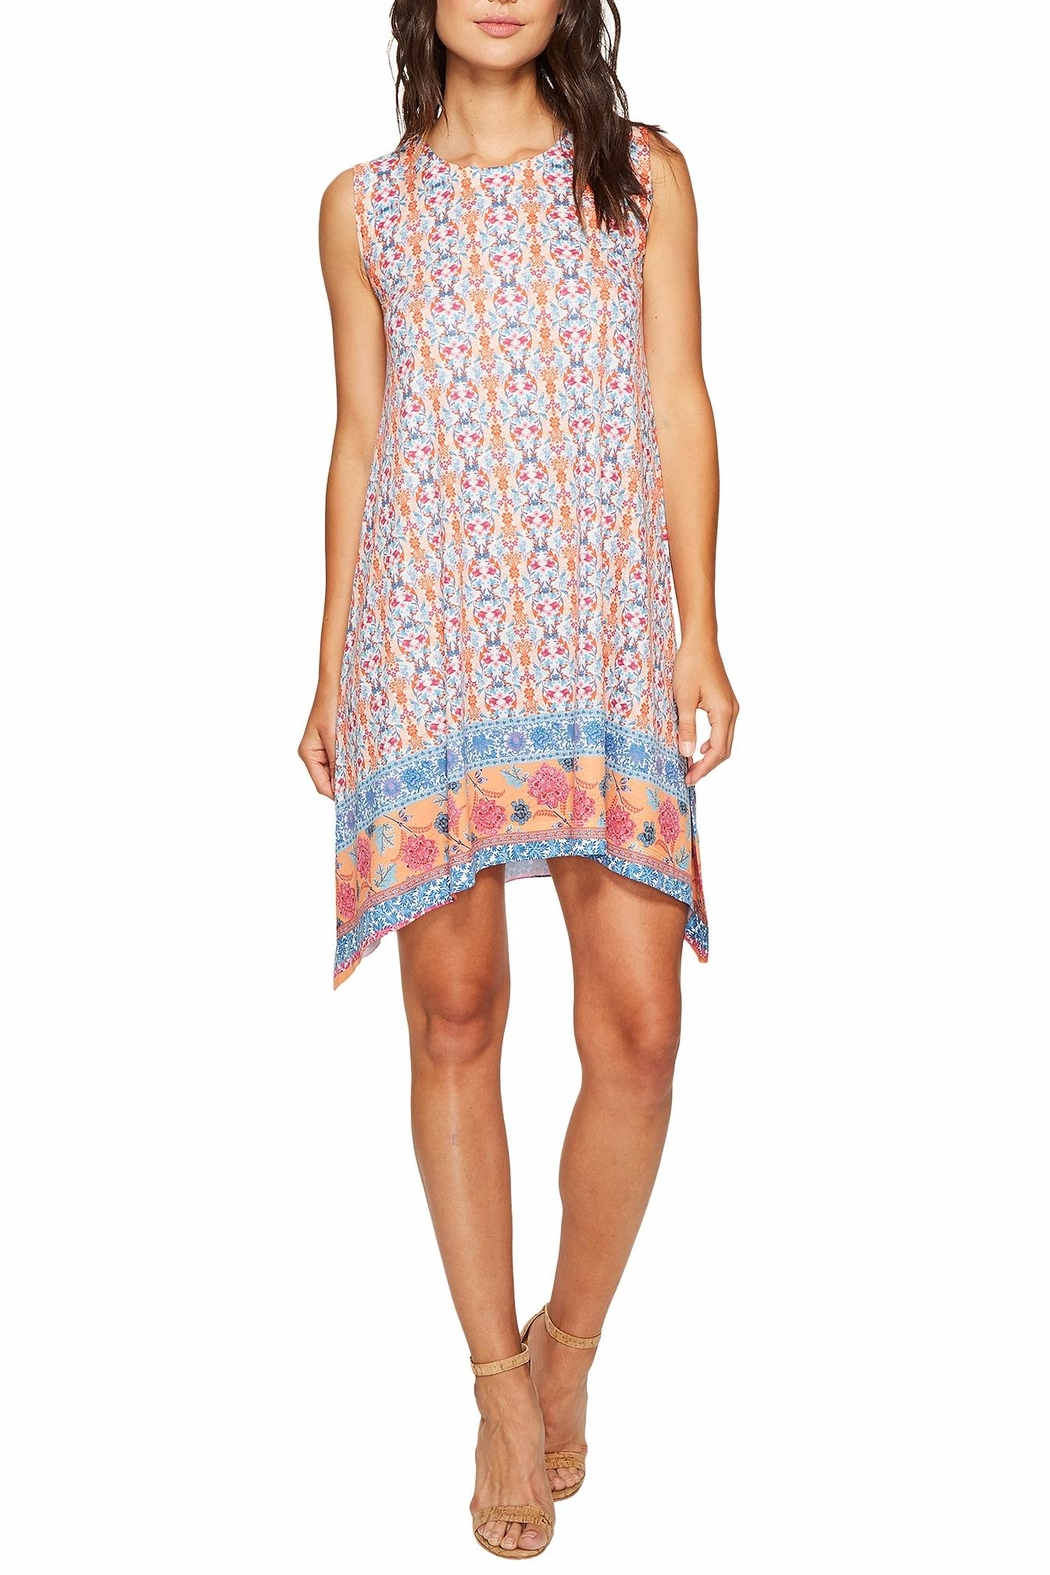 Nally & Millie Border Print Dress - Front Cropped Image